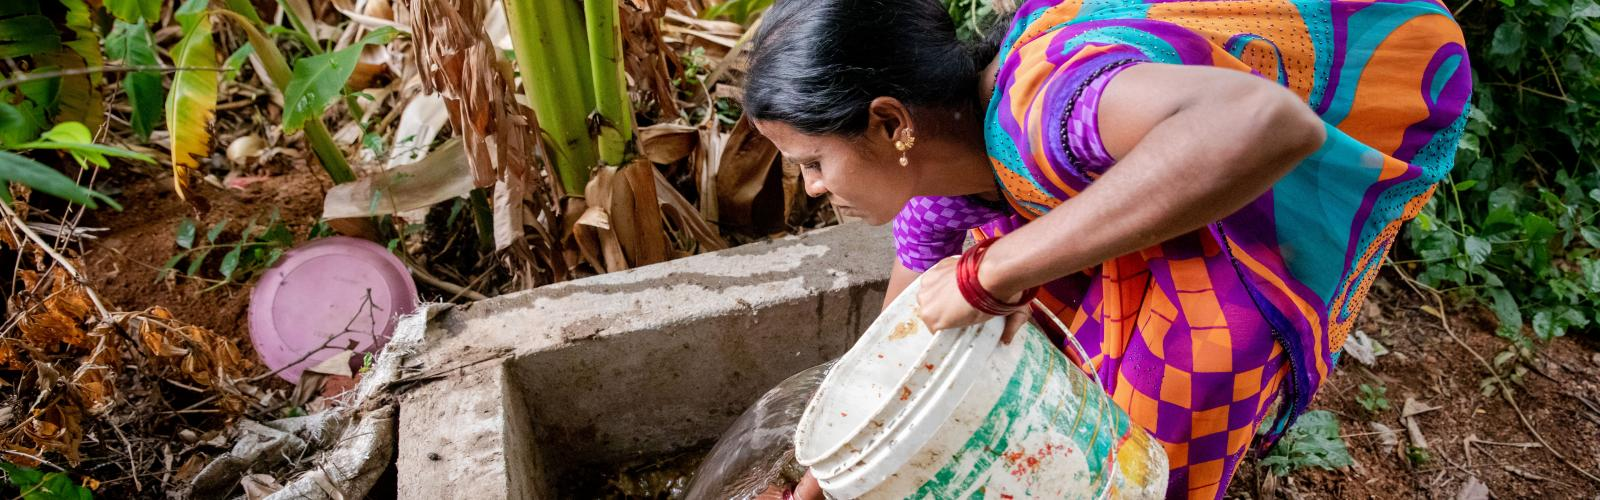 Woman working with biogas installation